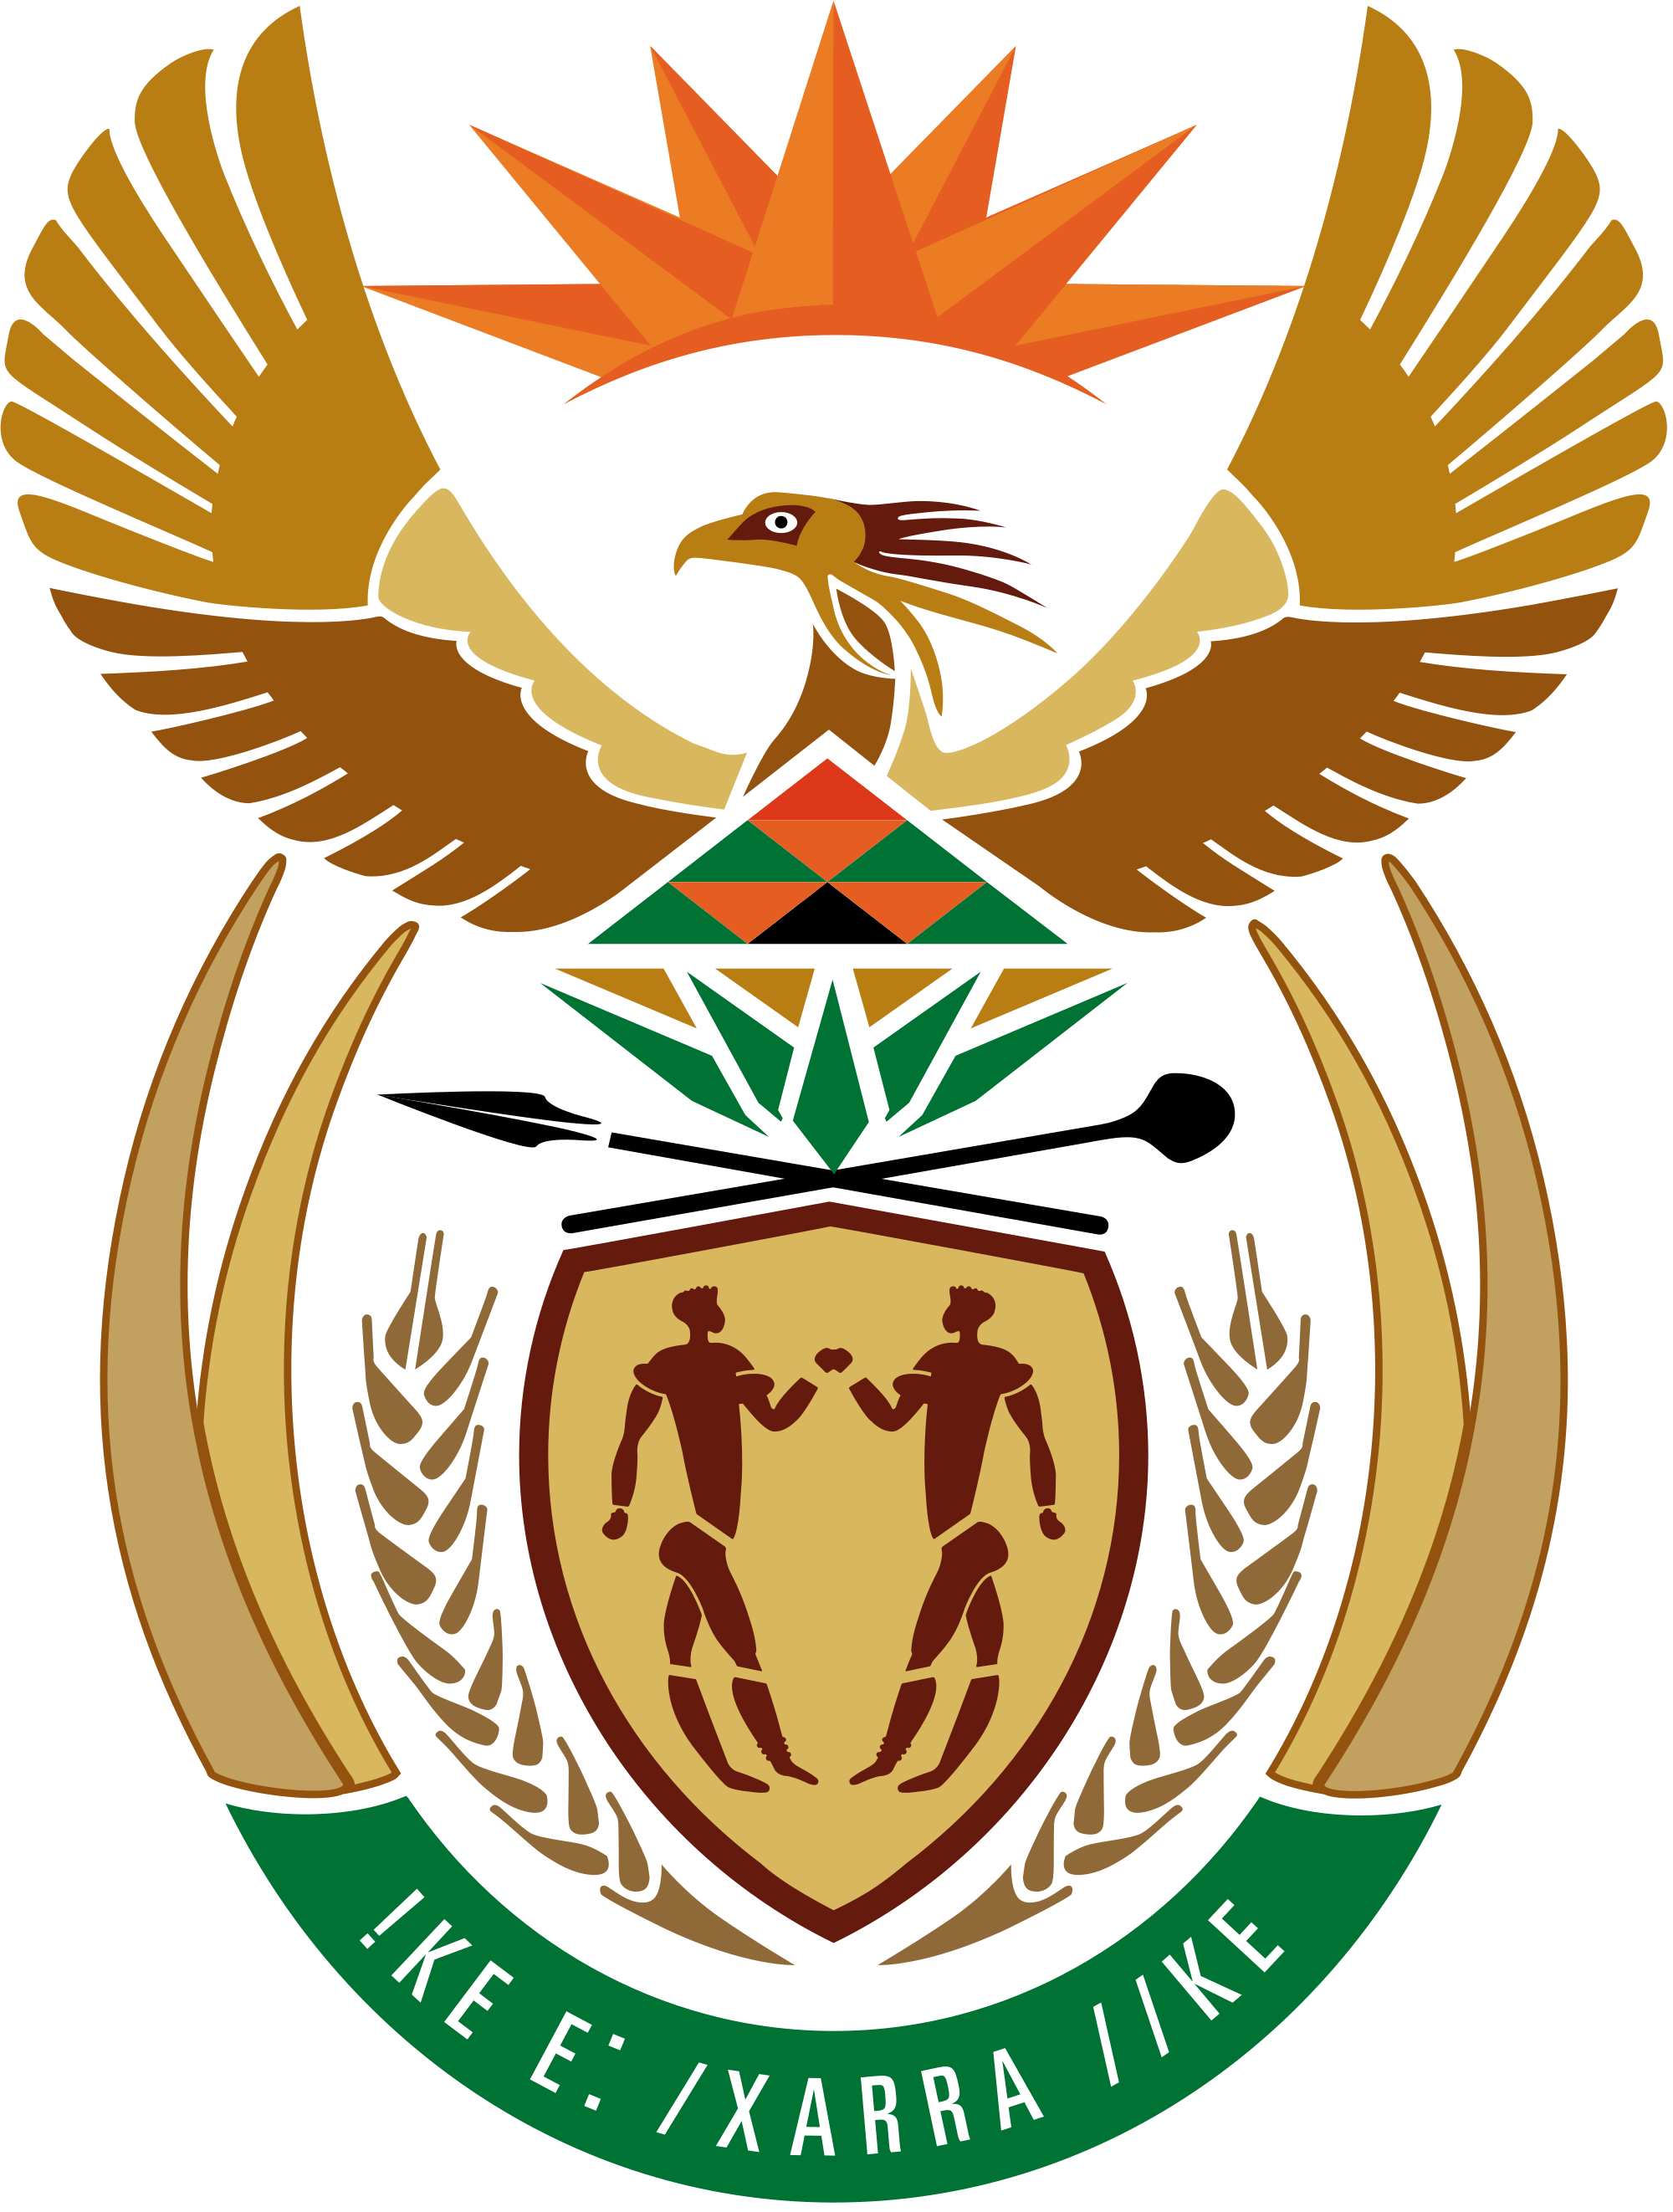 DEPARTMENT-OF-MINERALS-AND-ENERGY-REPUBLIC-OF-SOUTH-AFRICA-1